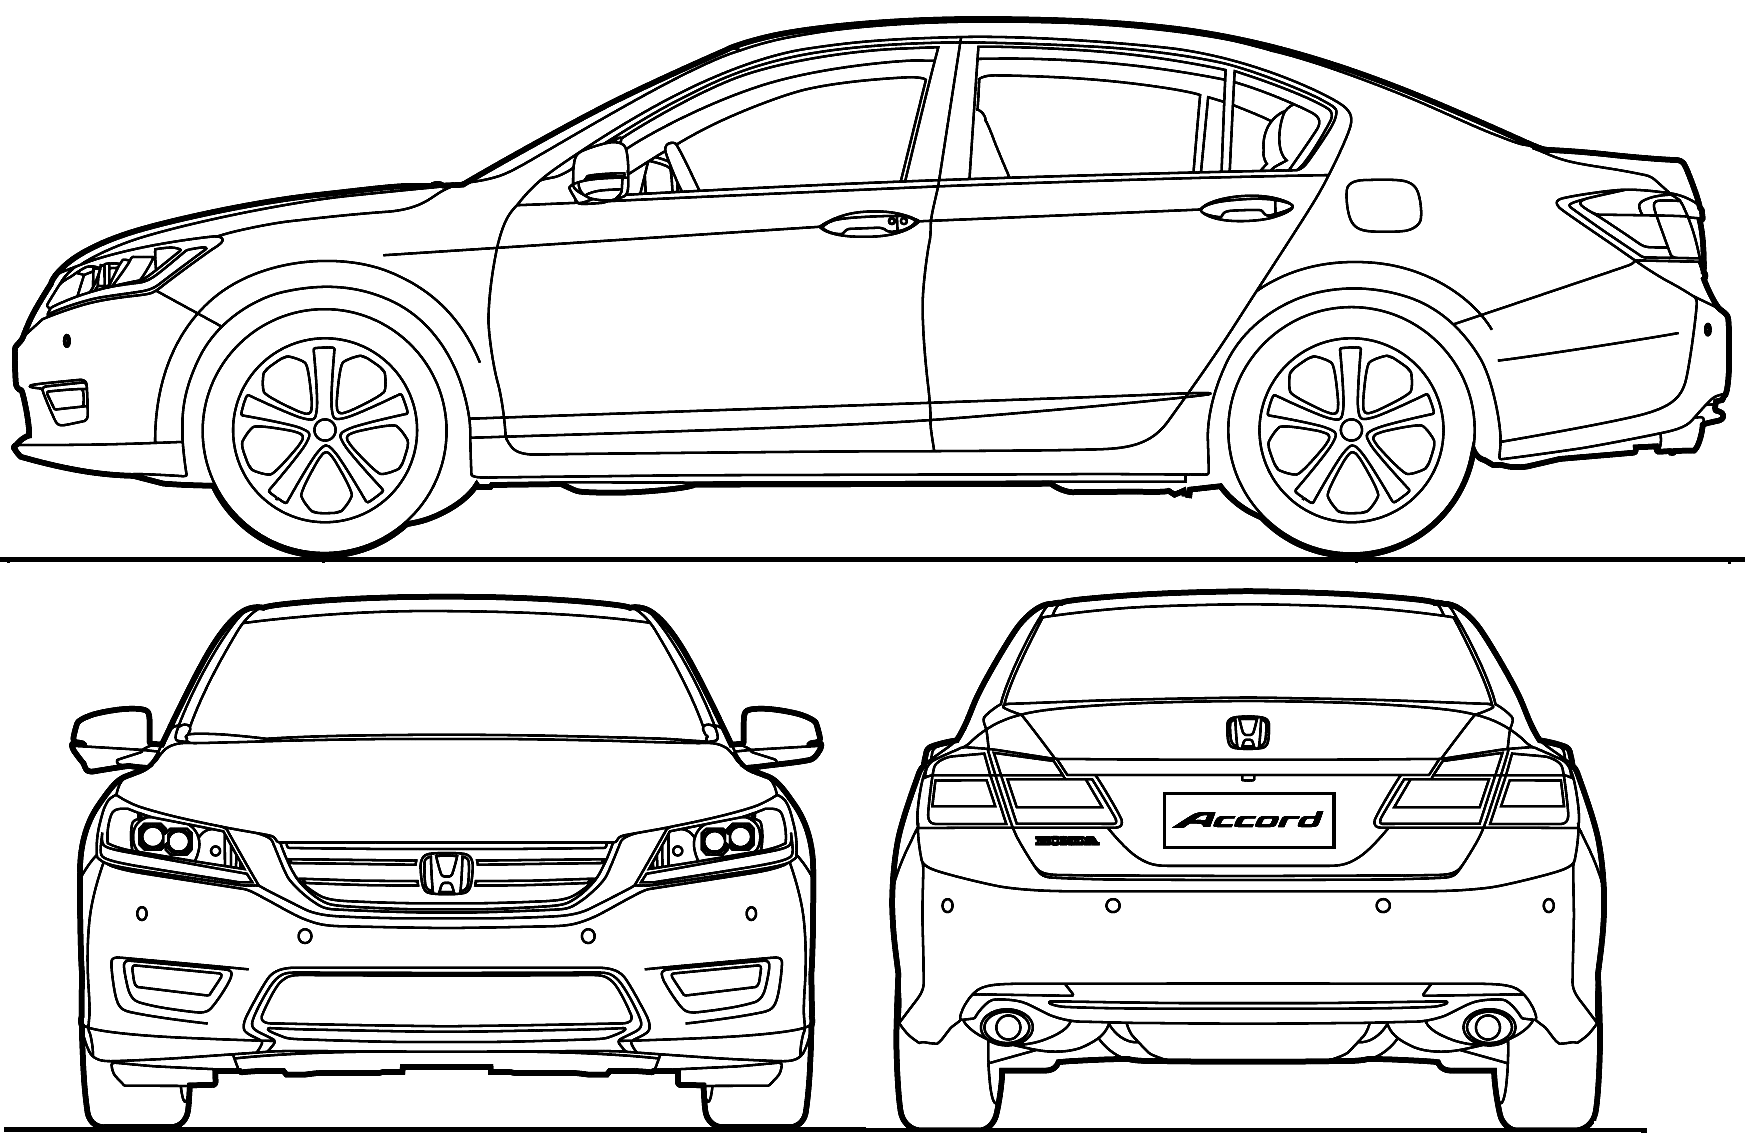 dibujo de honda accord descapotable para colorear